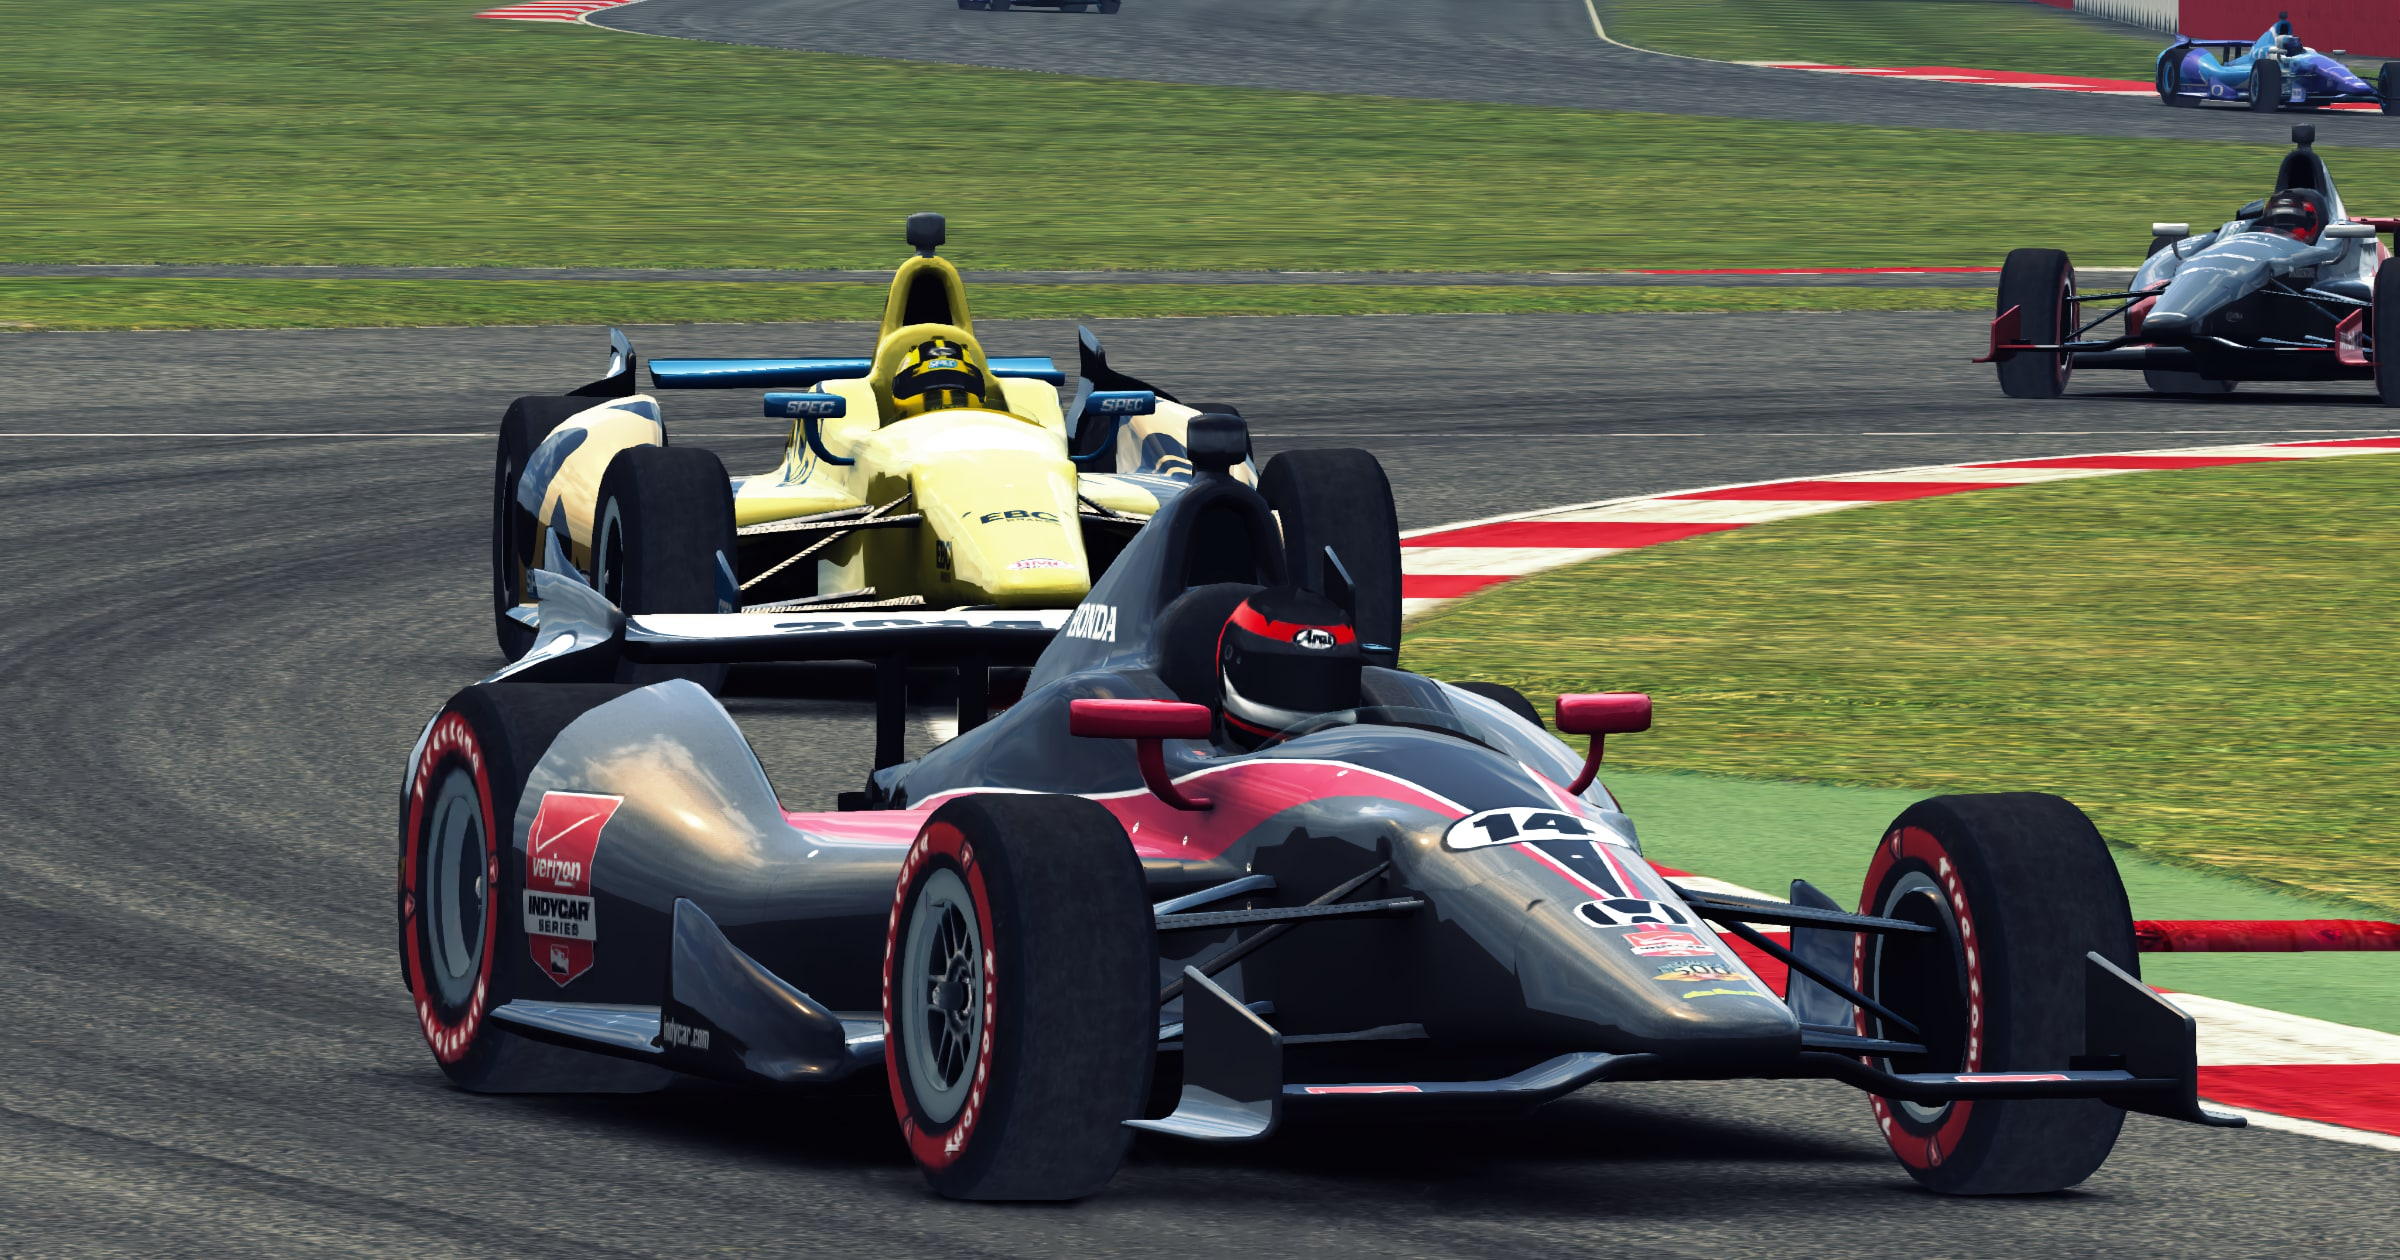 'GRID Autosport' Gets More Game Controls in New Update